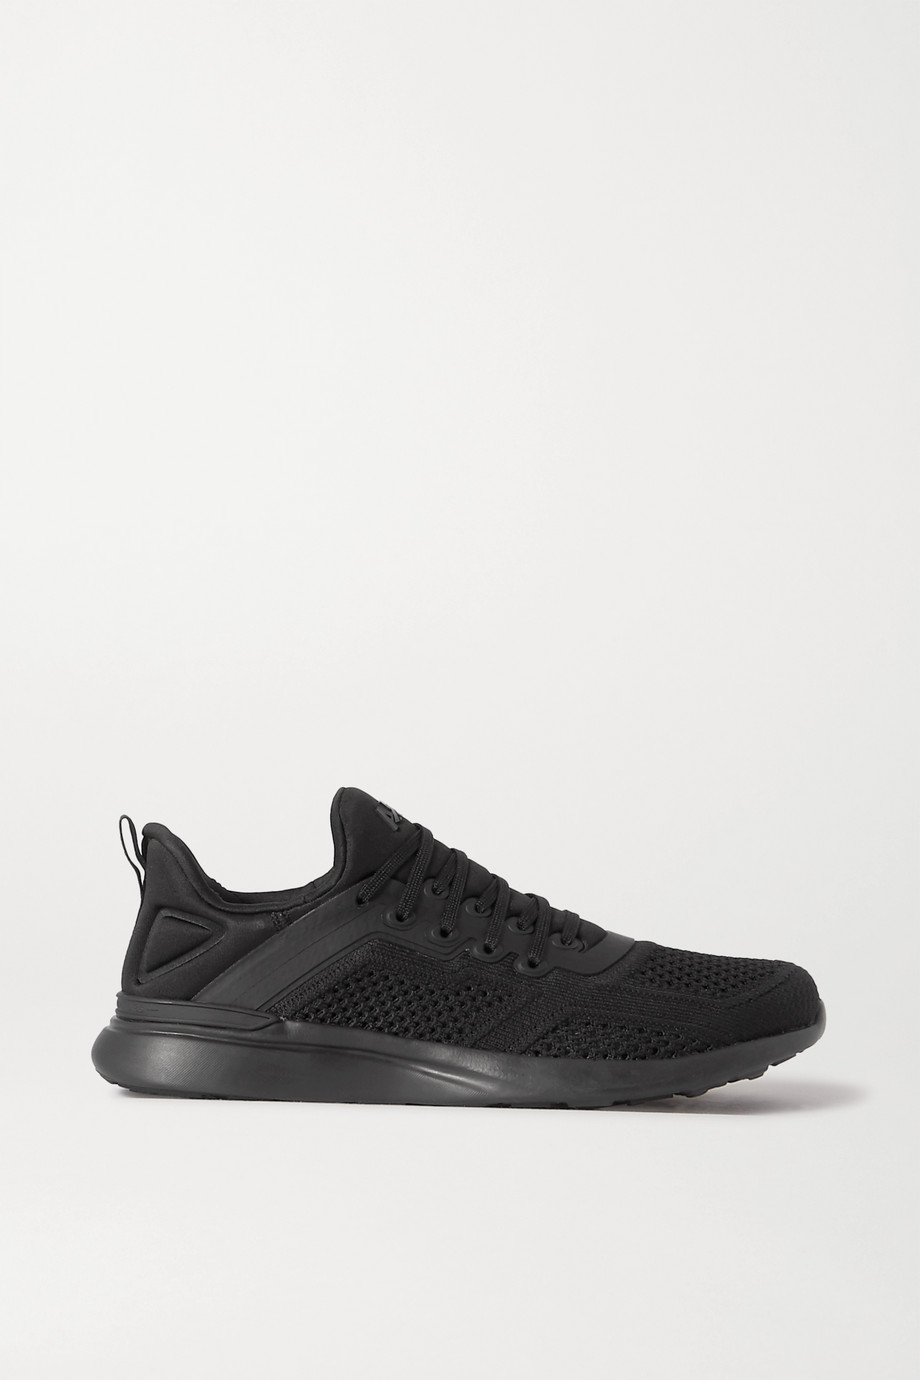 APL Athletic Propulsion Labs TechLoom Tracer Sneakers aus Mesh und Neopren